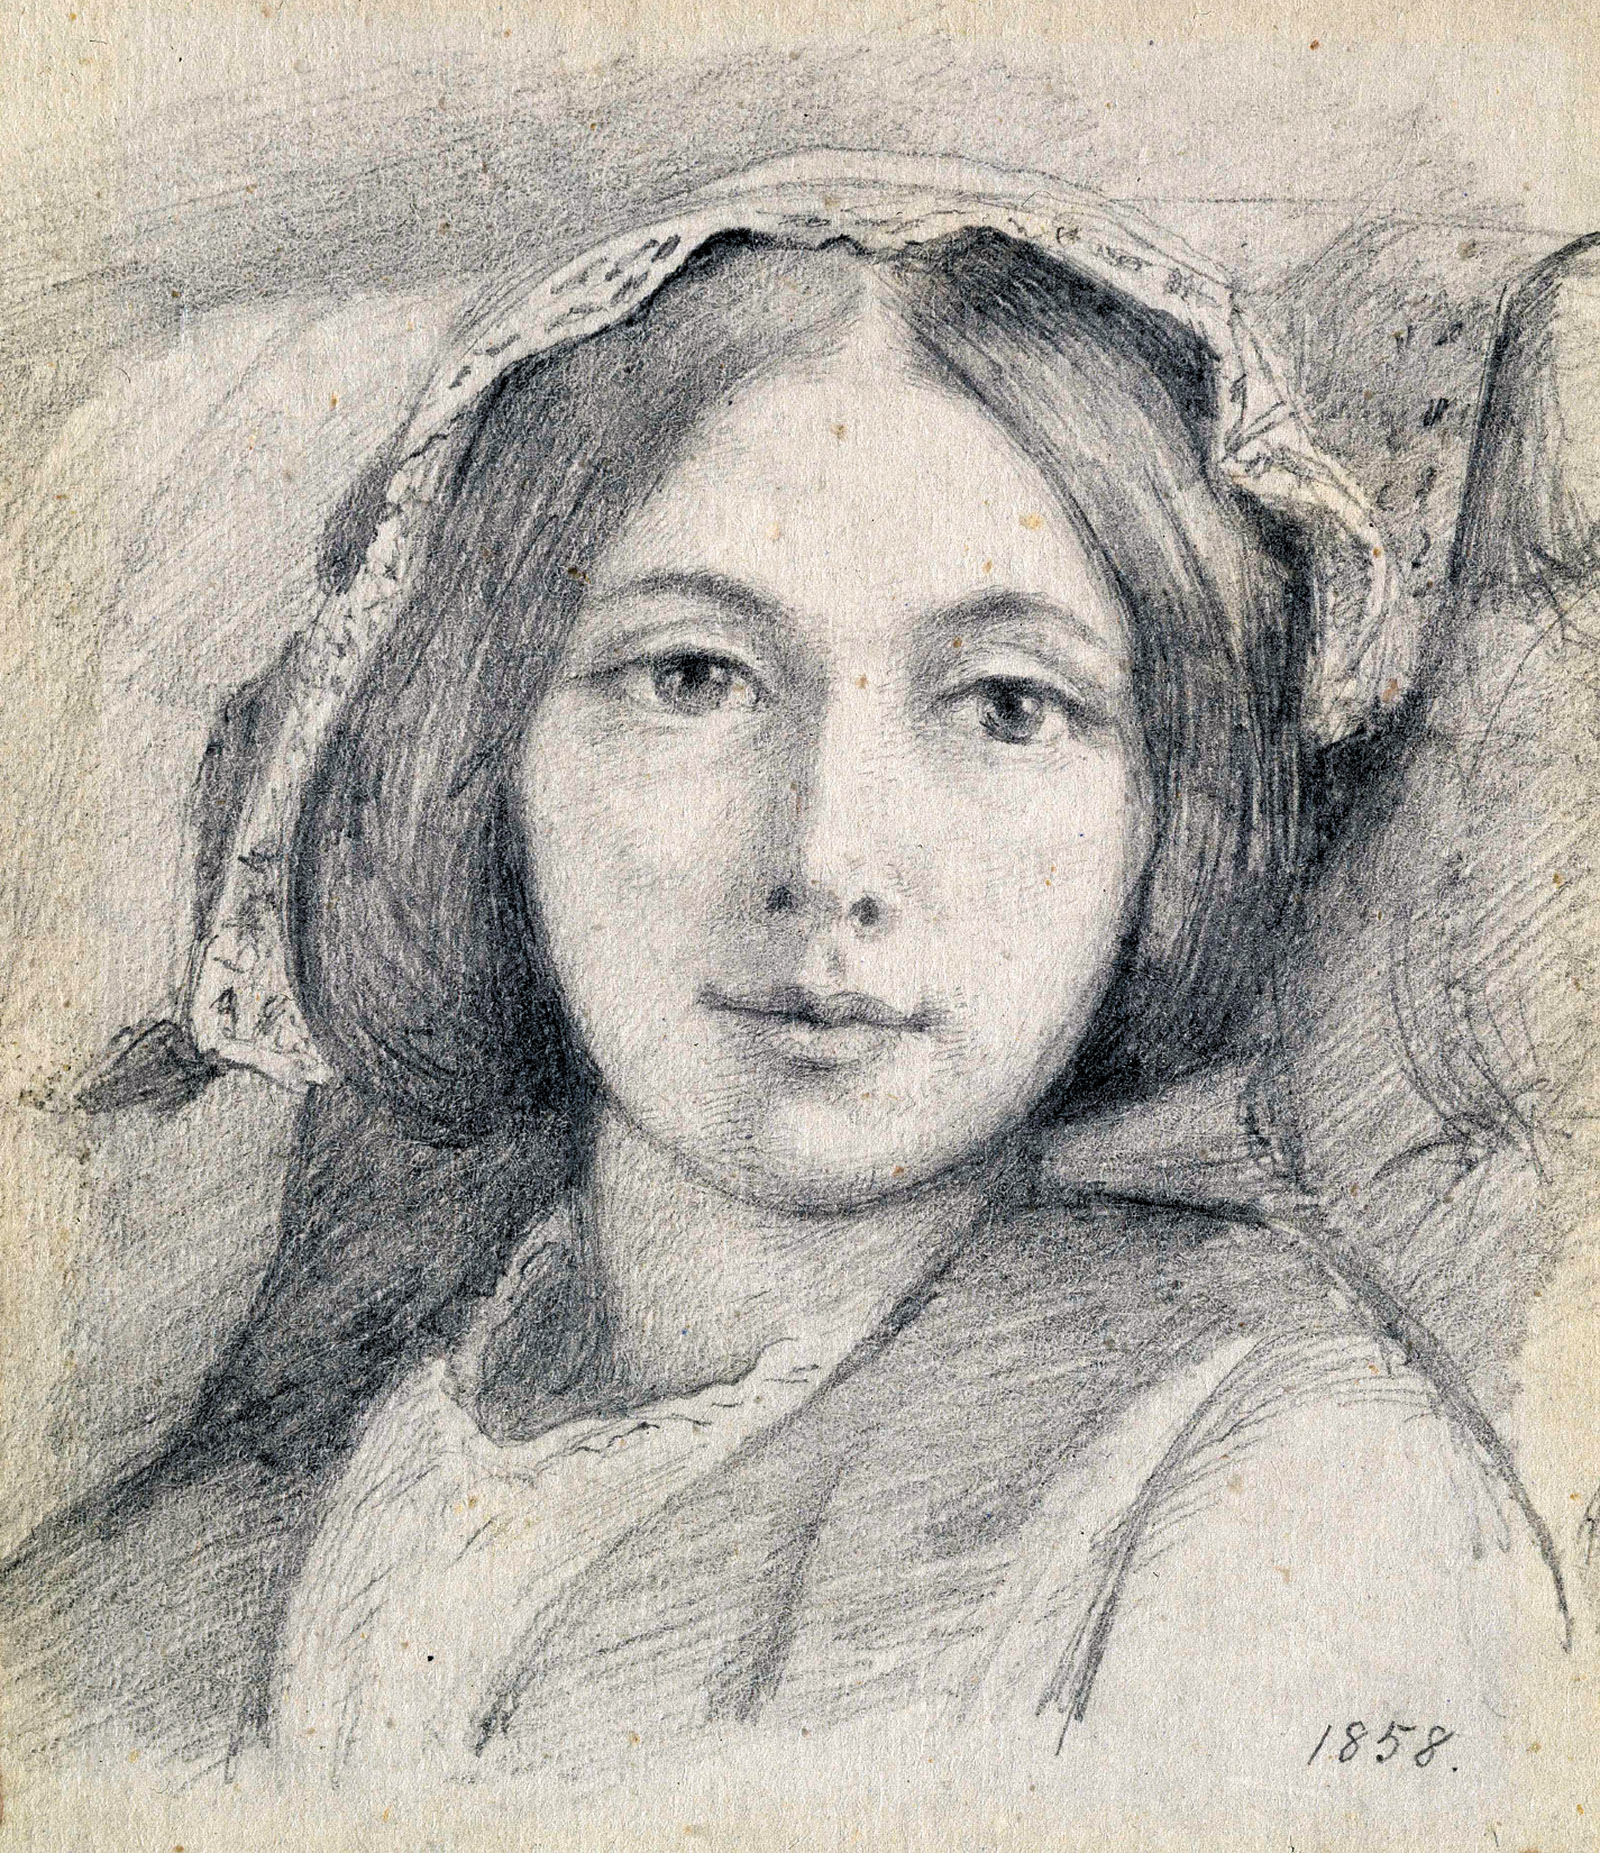 Mary Ellen Meredith; drawing by Henry Wallis